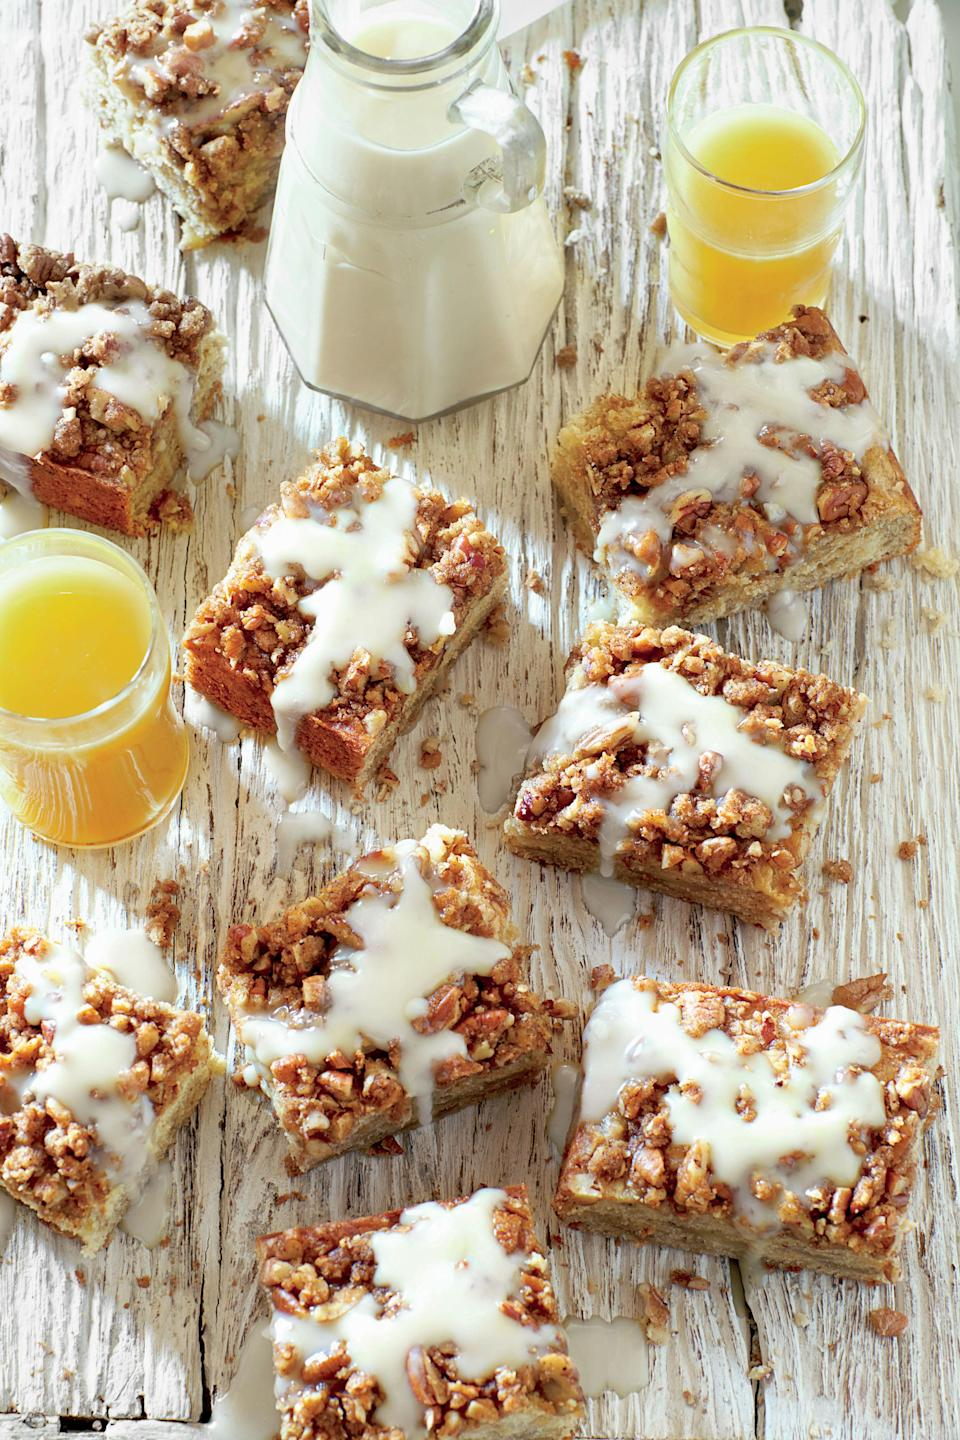 """<p><strong>Recipe: <a href=""""http://www.myrecipes.com/recipe/bananas-foster-coffee-cake"""" rel=""""nofollow noopener"""" target=""""_blank"""" data-ylk=""""slk:Bananas Foster Coffee Cake with Vanilla-Rum Sauce"""" class=""""link rapid-noclick-resp"""">Bananas Foster Coffee Cake with Vanilla-Rum Sauce</a></strong></p> <p>Substitute extra cream for rum in the sauce, if you prefer.</p>"""